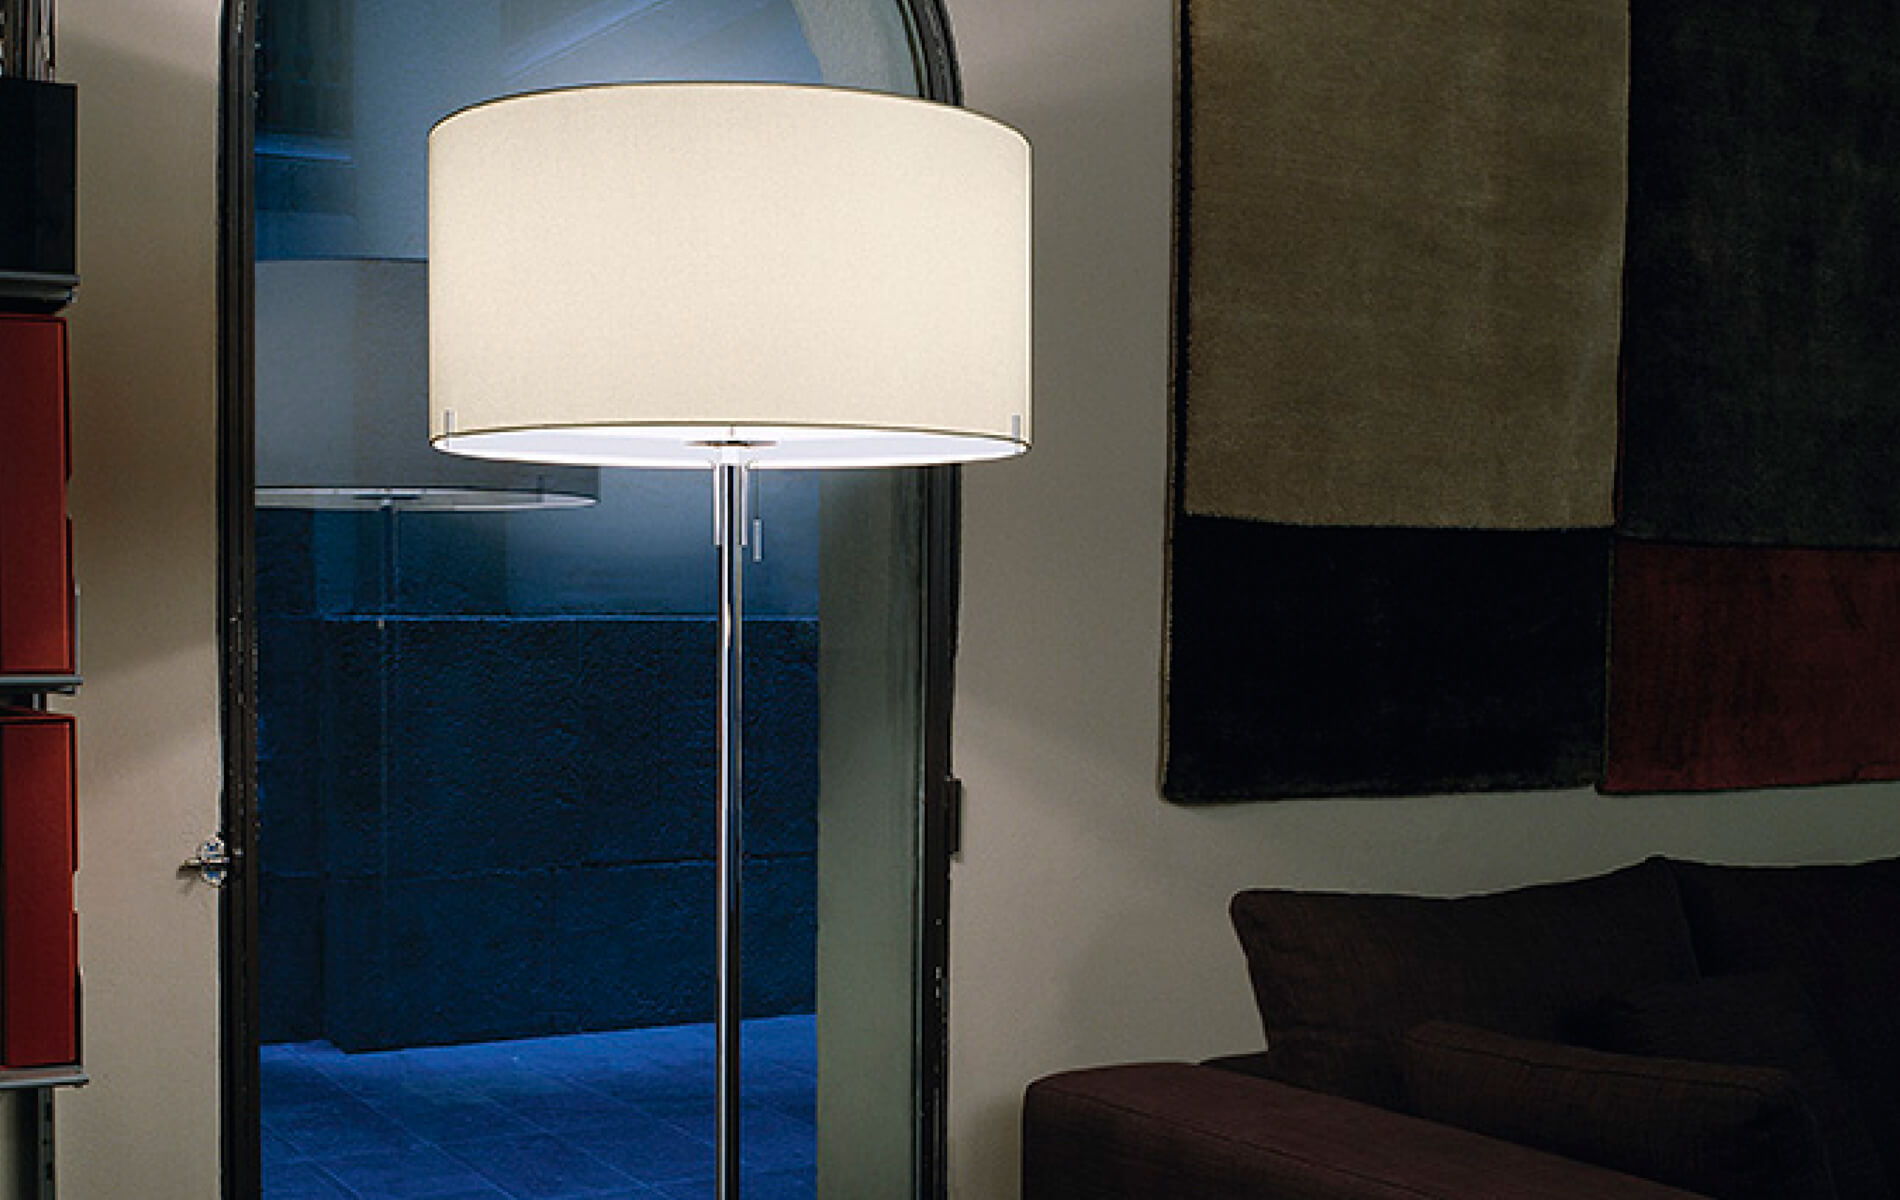 More information of Carpyen AITANA floor lamp